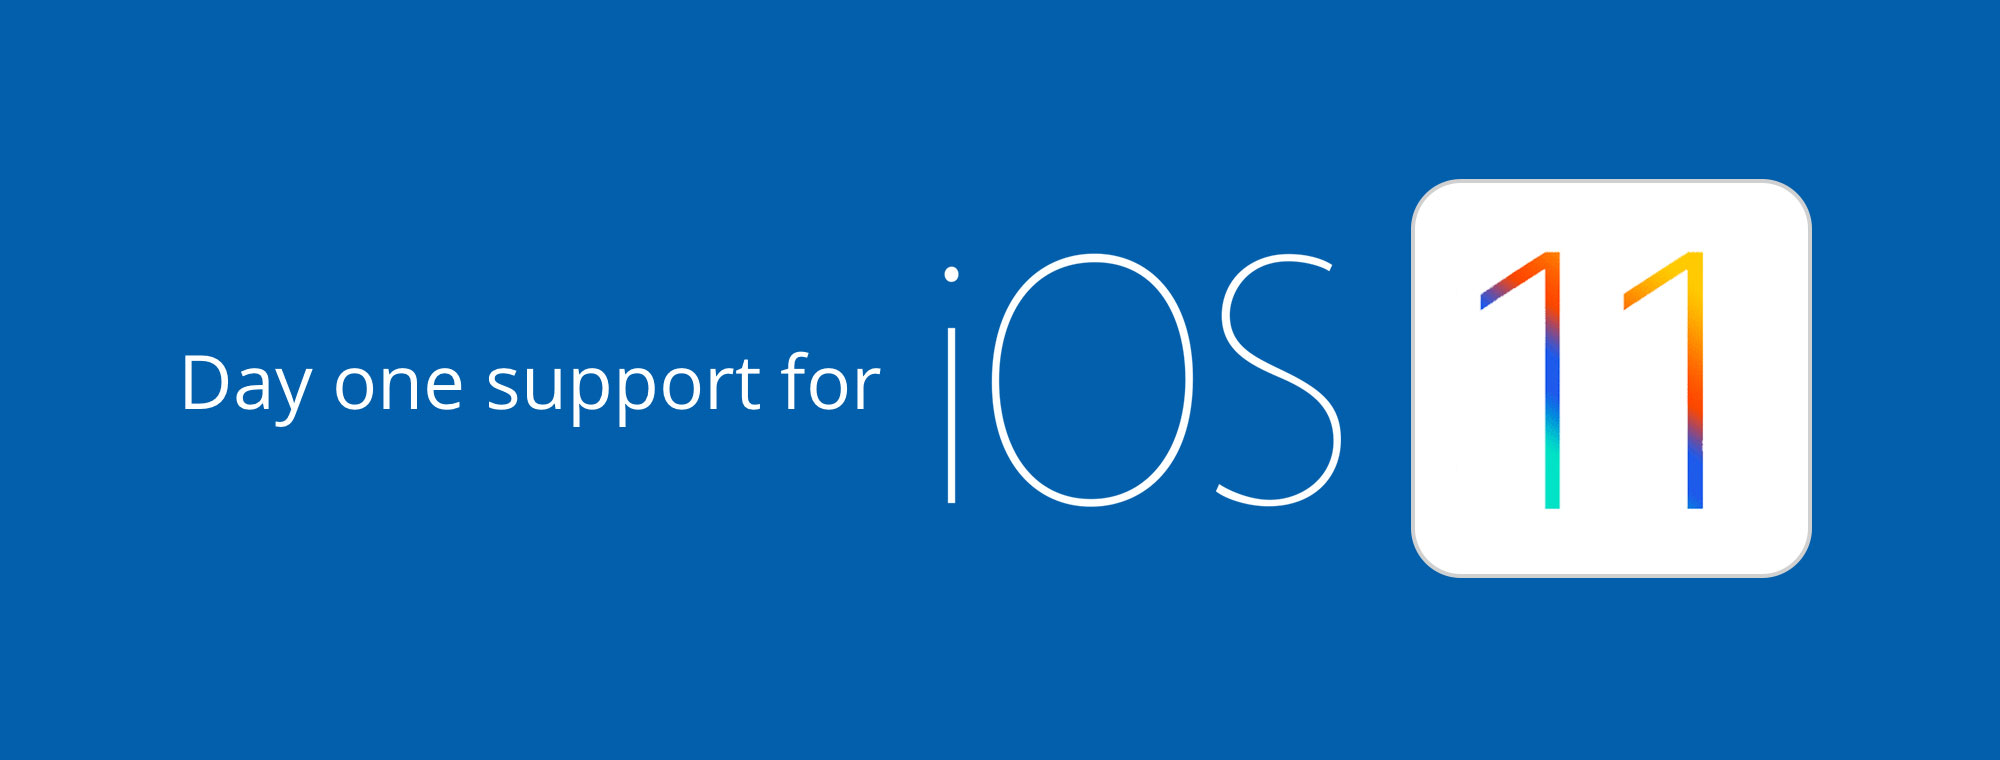 Day one support for iOS 11